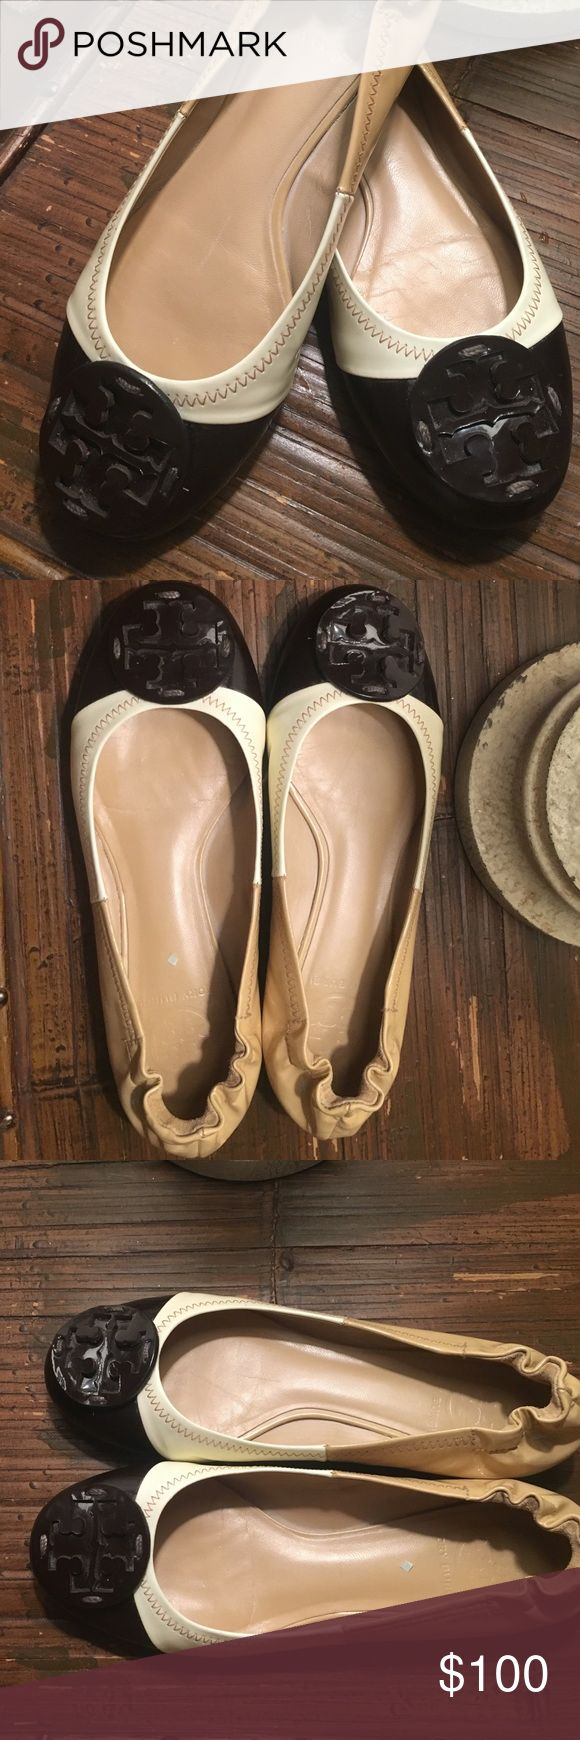 Tory Burch REVA Tri color signature Flats SZ 6 Tory Burch REVA Tri color - Brown, Camel and cream patent leather ballet flats with signature logo on toe. Tory Burch Shoes Flats & Loafers